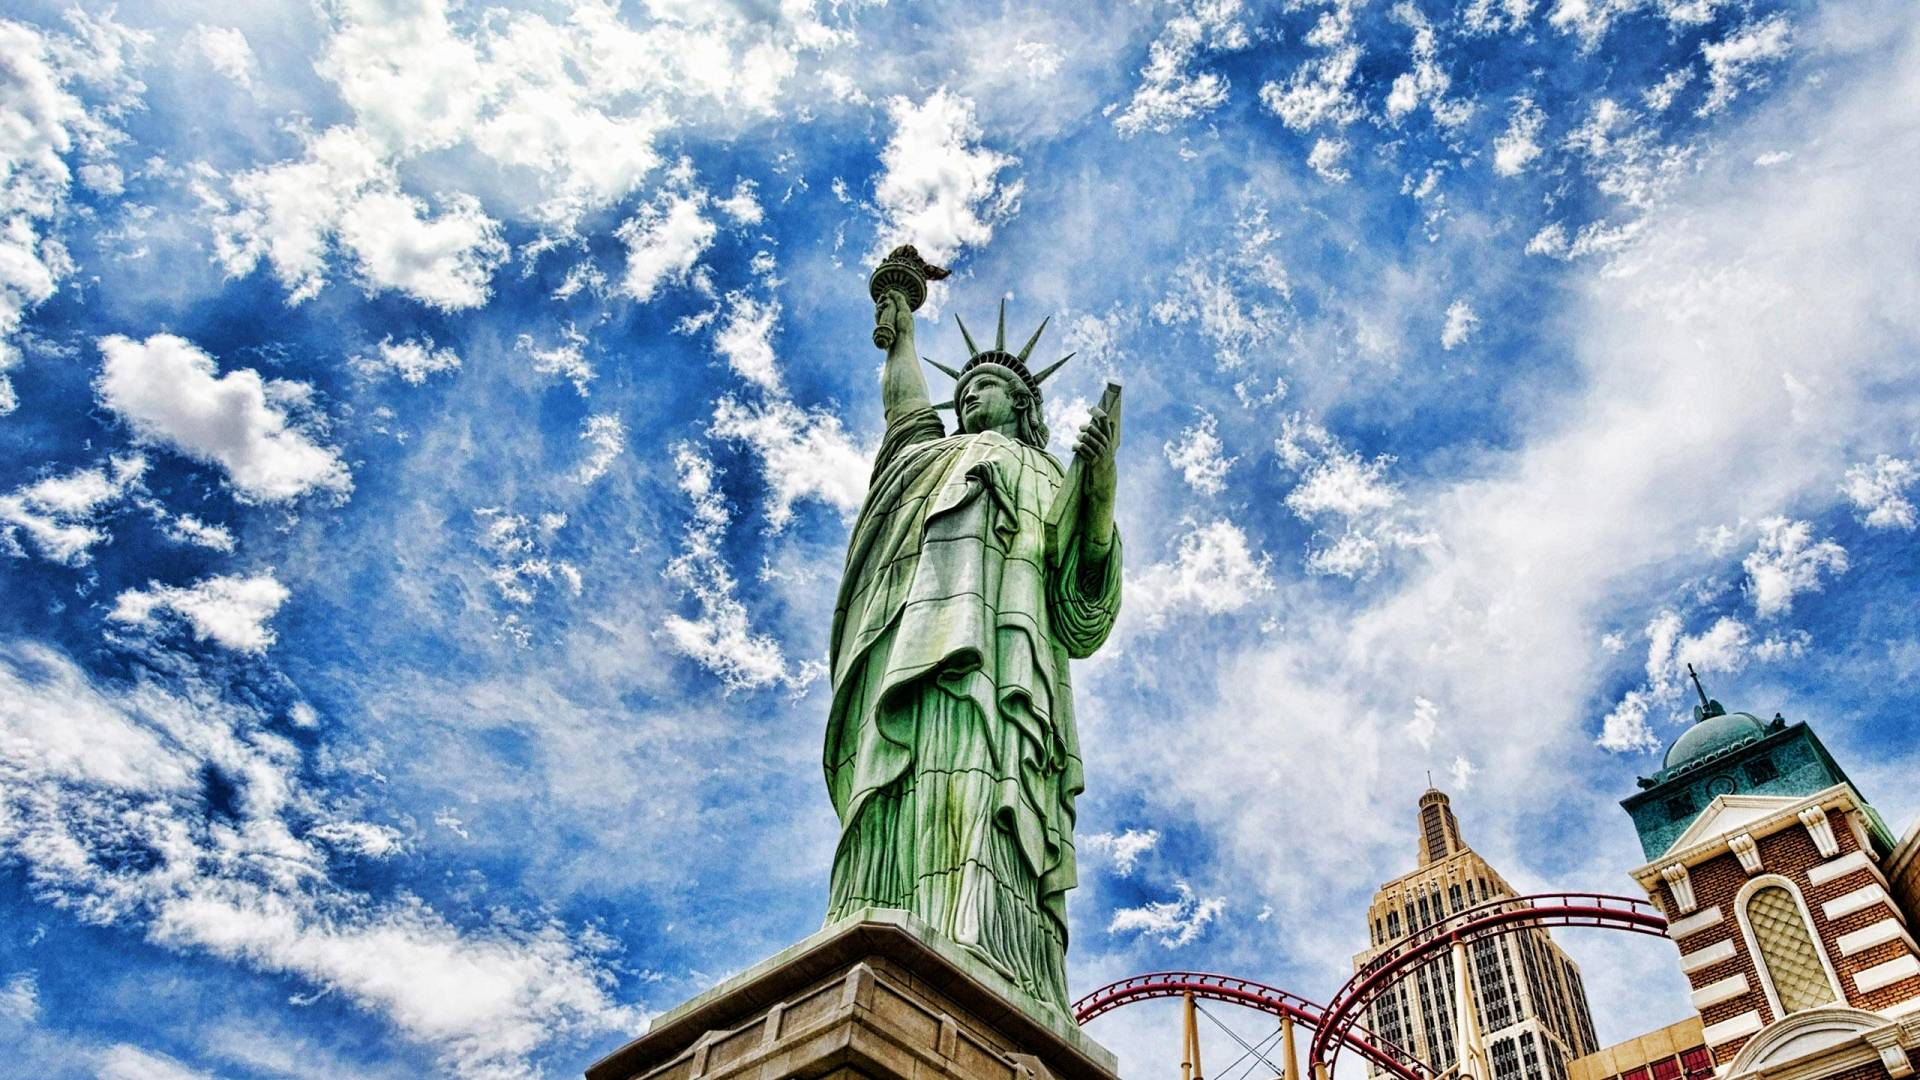 Statue Of Liberty Stunning Wallpapers